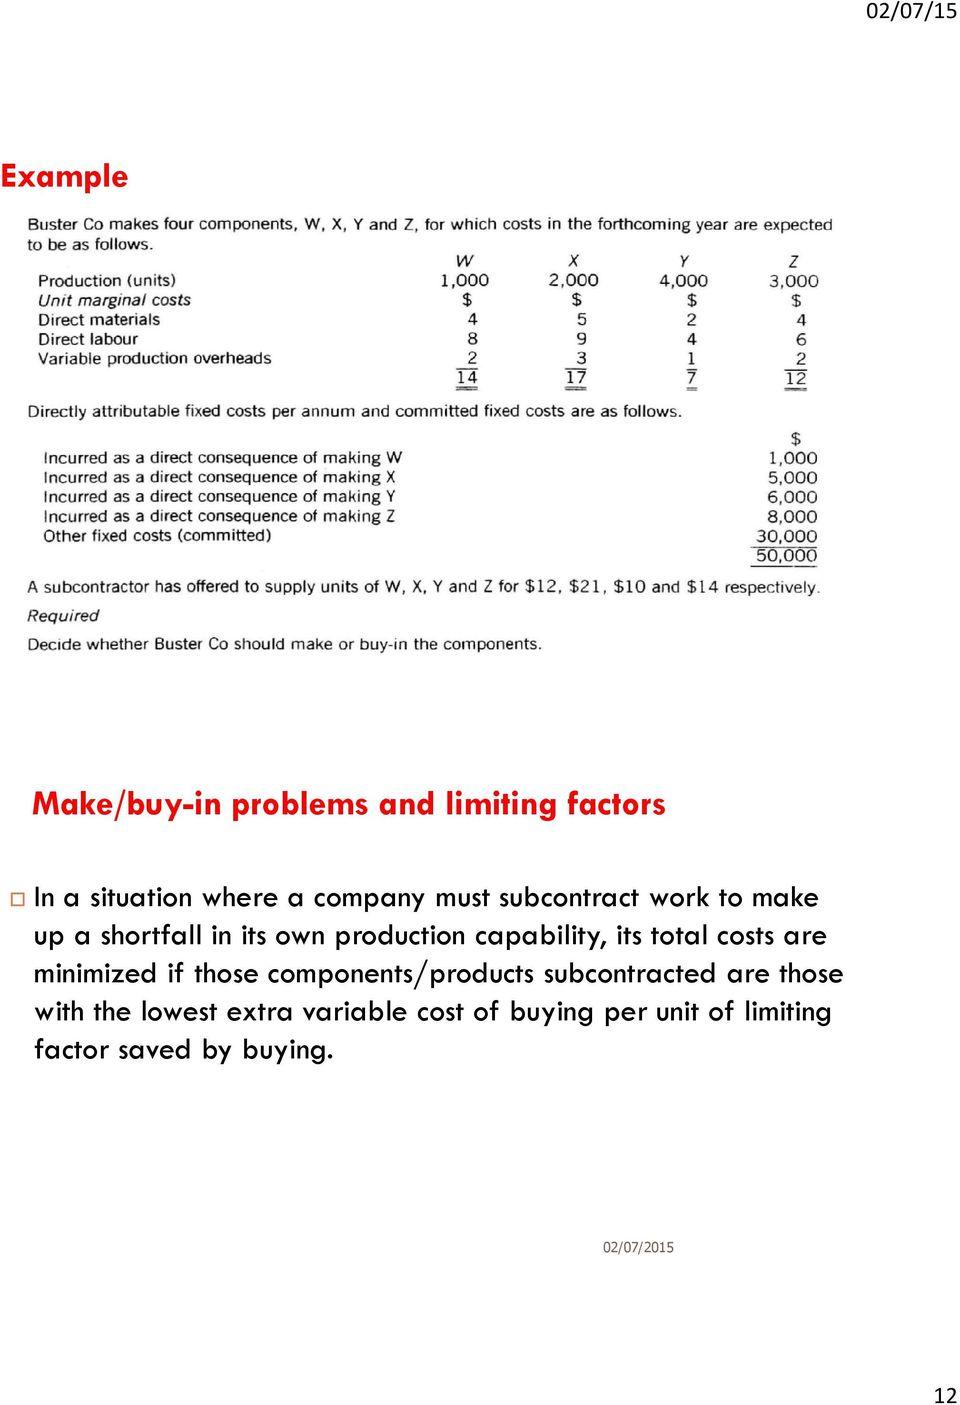 total costs are minimized if those components/products subcontracted are those with